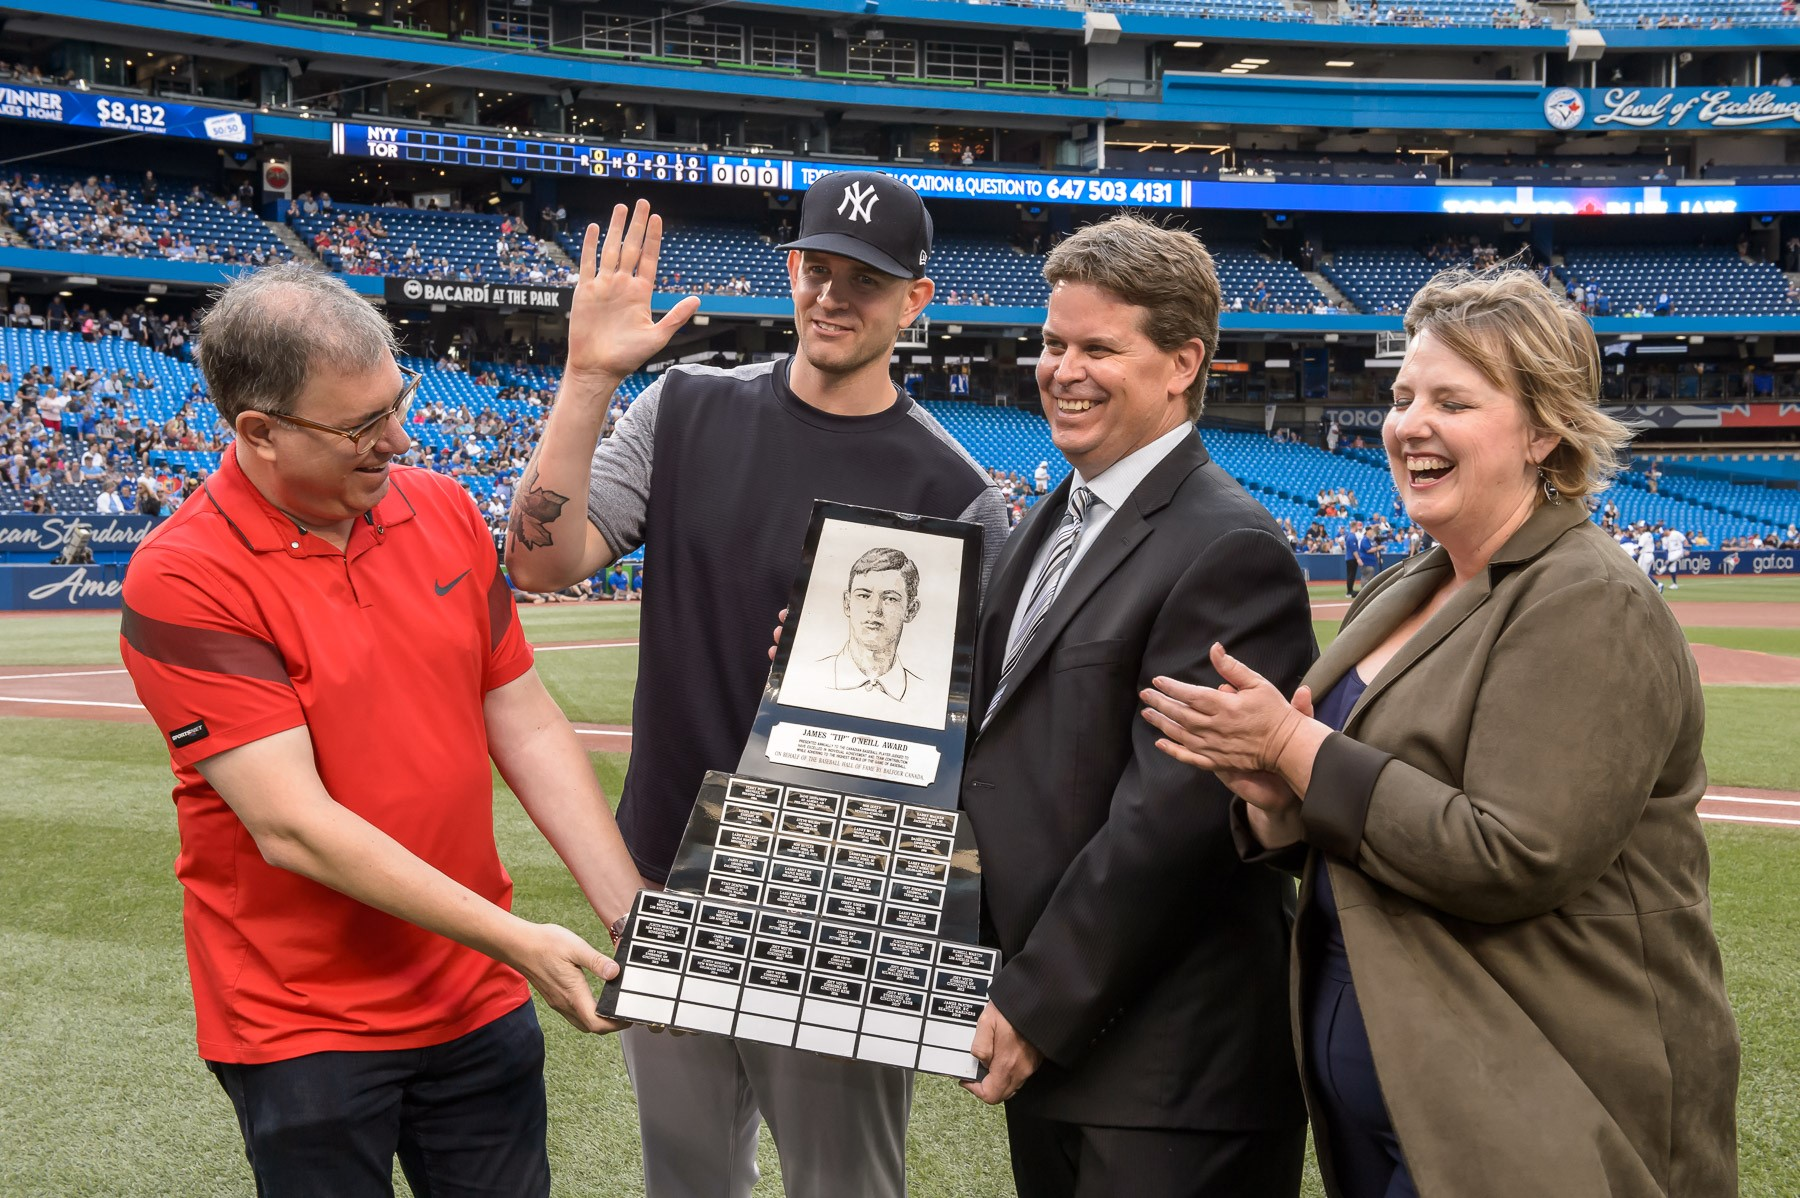 Ladner, B.C., native James Paxton (second from left) was presented with the Canadian Baseball Hall of Fame's 2018 Tip O'Neill Award in a pre-game ceremony at the Rogers Centre on Friday. Canadian Baseball Hall of Fame board member Mike Wilner (left), Hall director of operations, Scott Crawford (second from right) and Hall board member Tammy Adkin were on hand for the presentation. Photo: Toronto Blue Jays/Canadian Baseball Hall of Fame